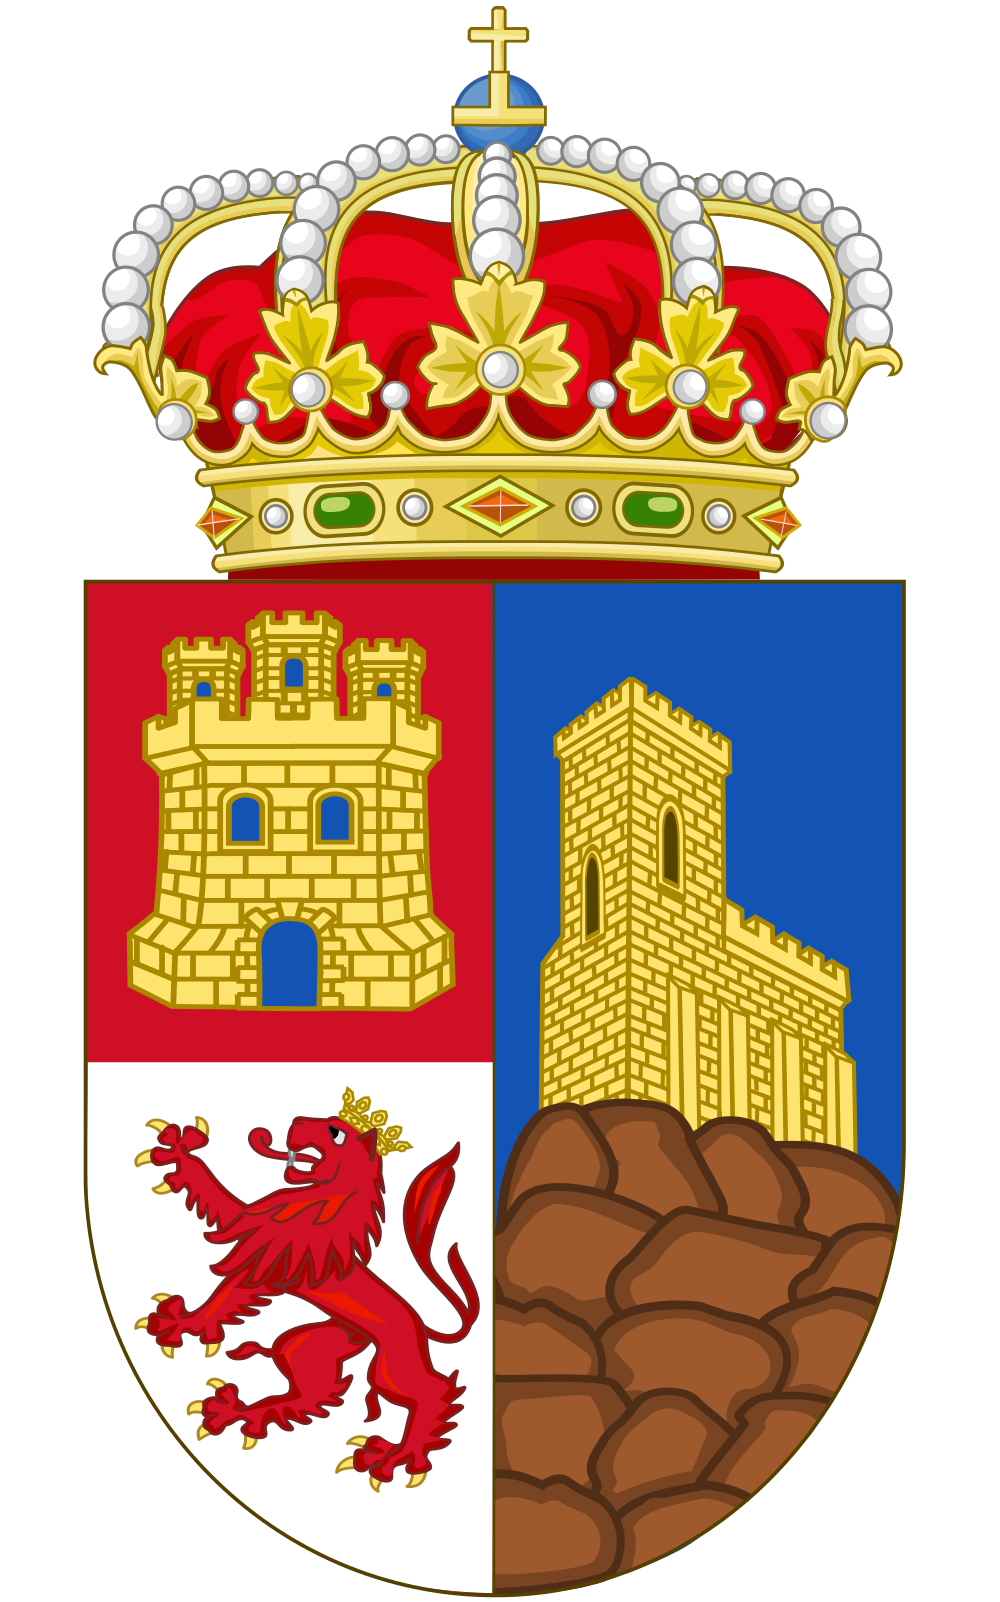 File:Coat of Arms of Atienza.svg.